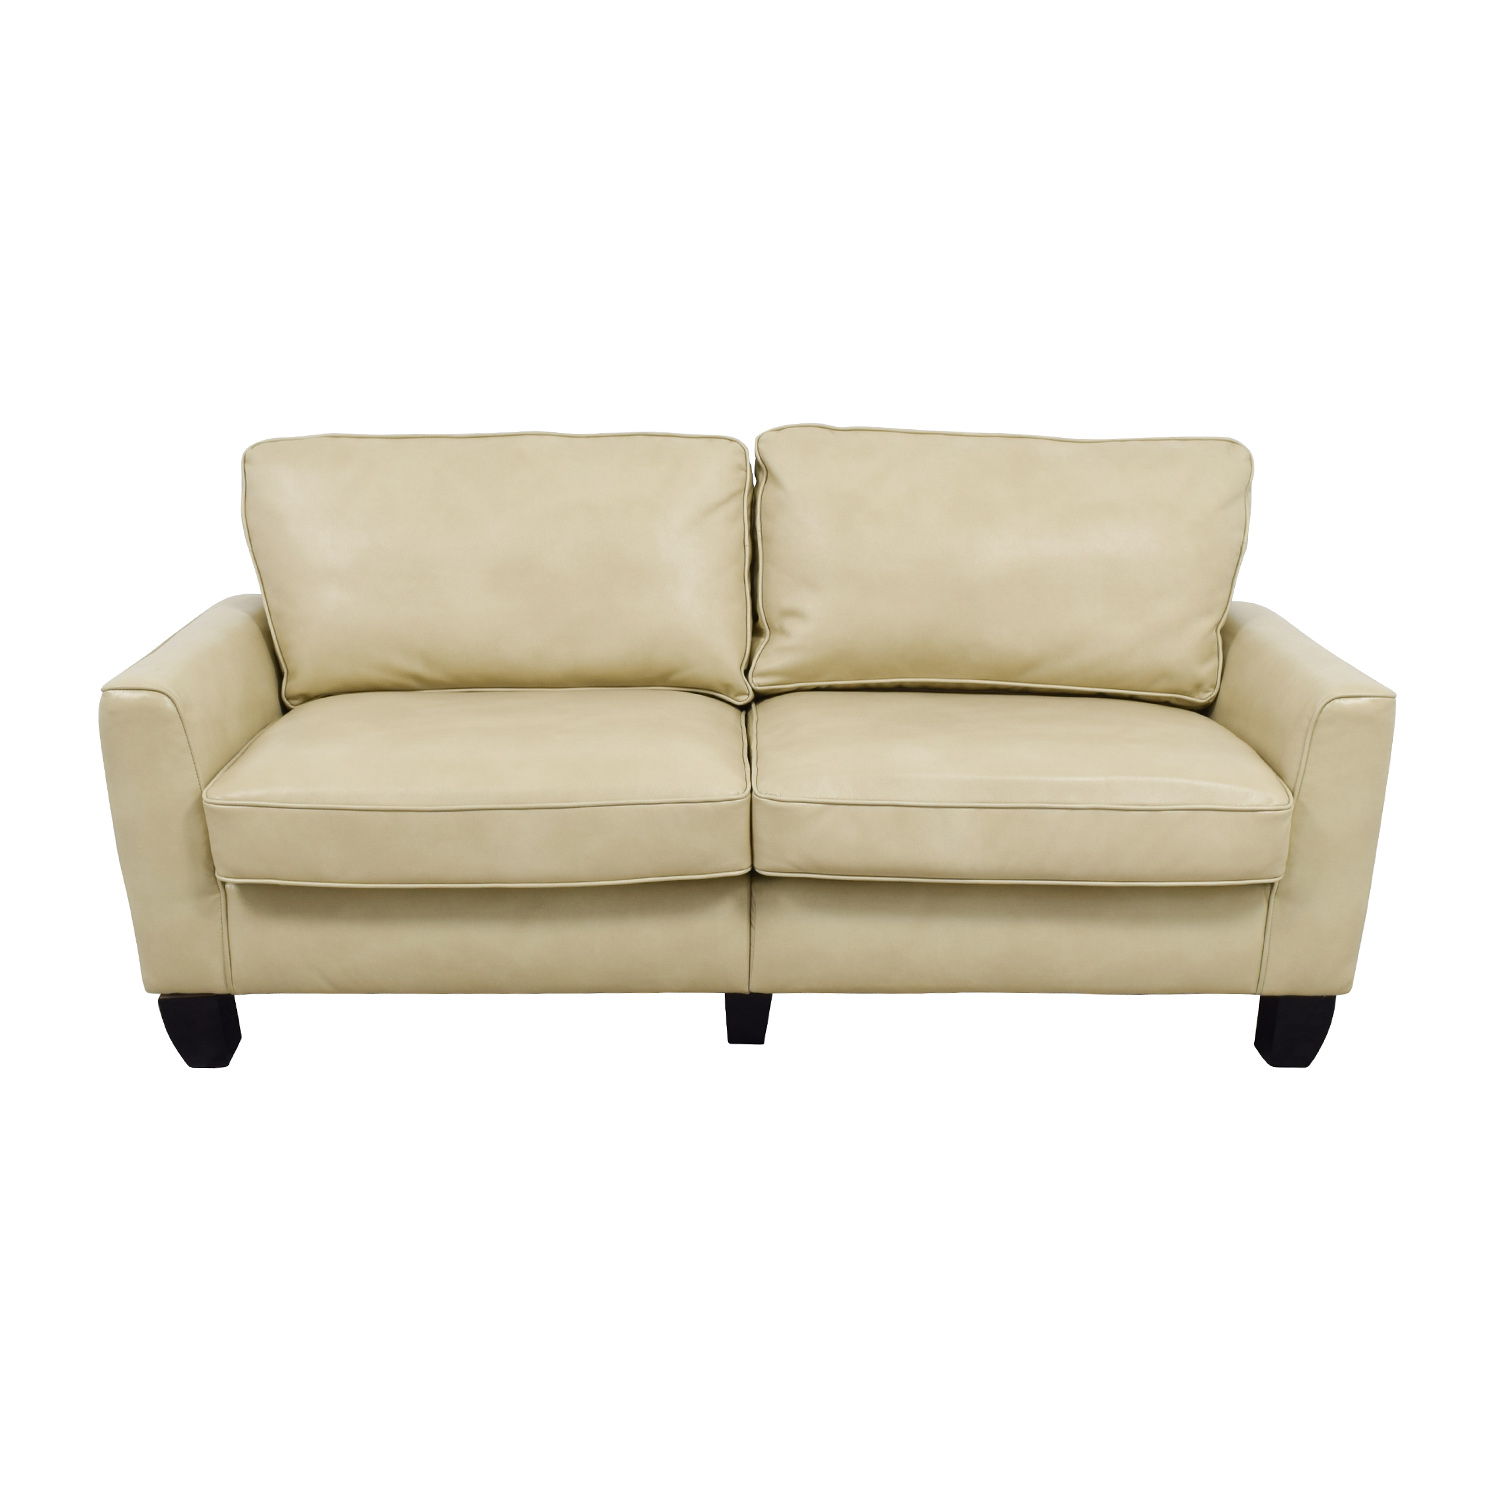 Cream Fabric Sofas Cream Fabric Sofa 47 With Simoon Net Sofas 2 Thesofa